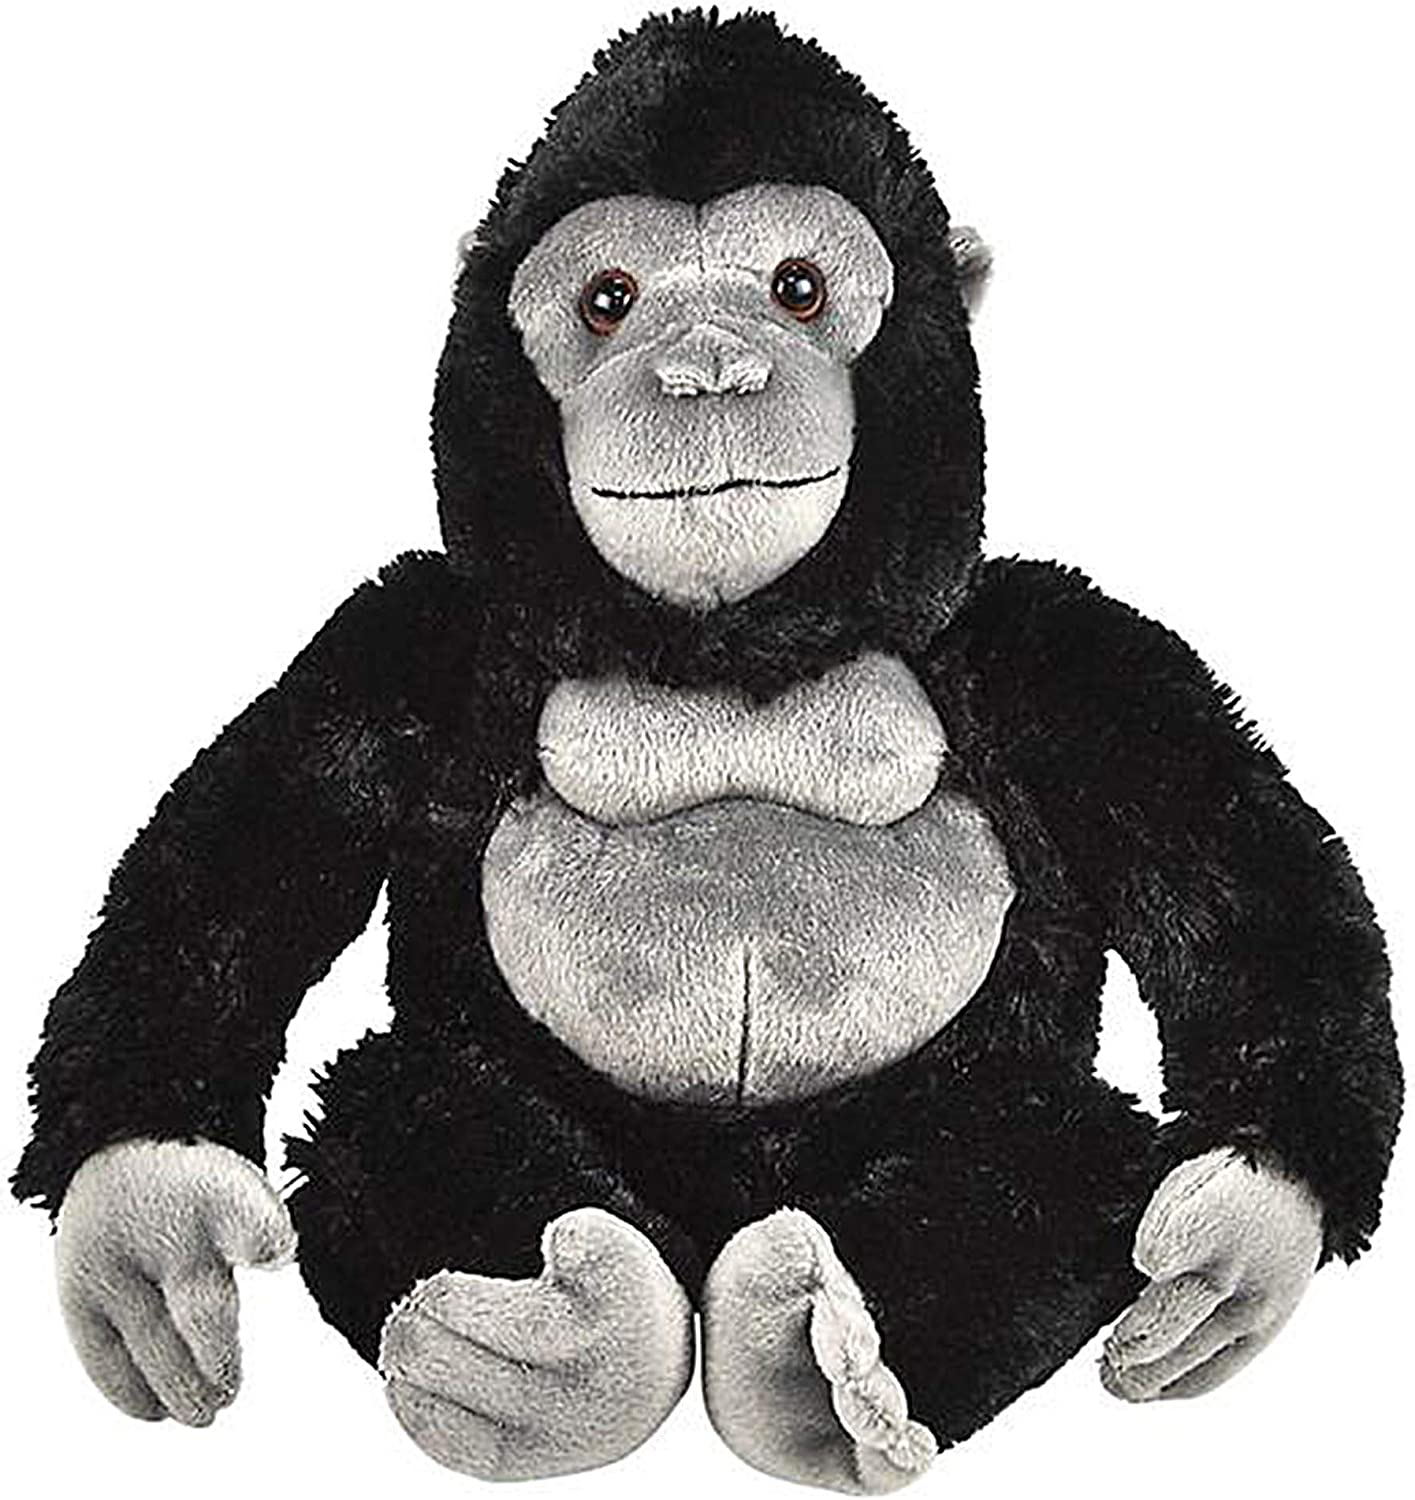 Wildlife Tree 11 and 5.5 Inch Stuffed Gorilla Mom and Baby Plush Floppy Zoo Animal Family Collection